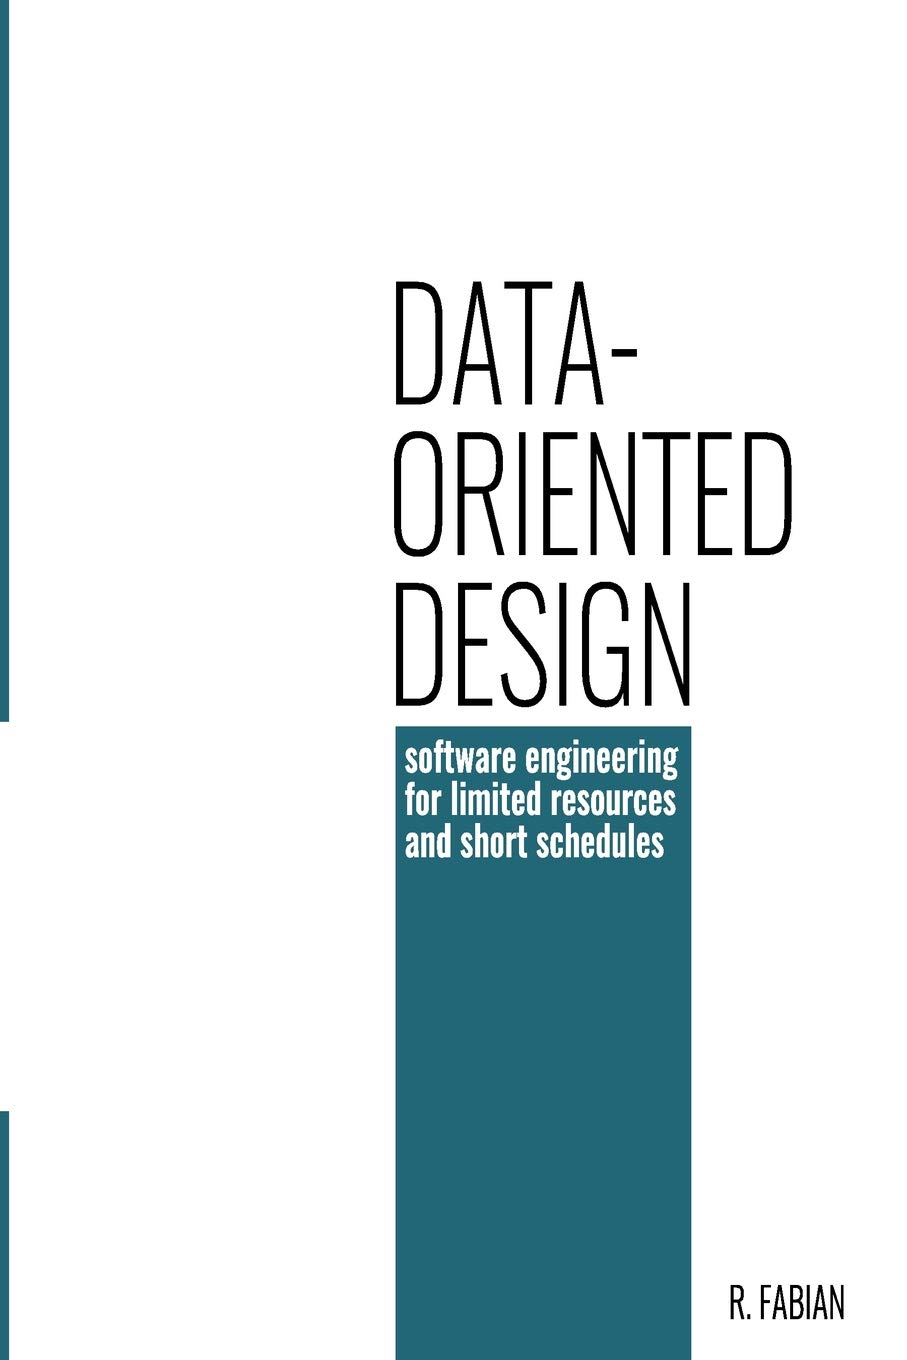 Data-oriented design: software engineering for limited